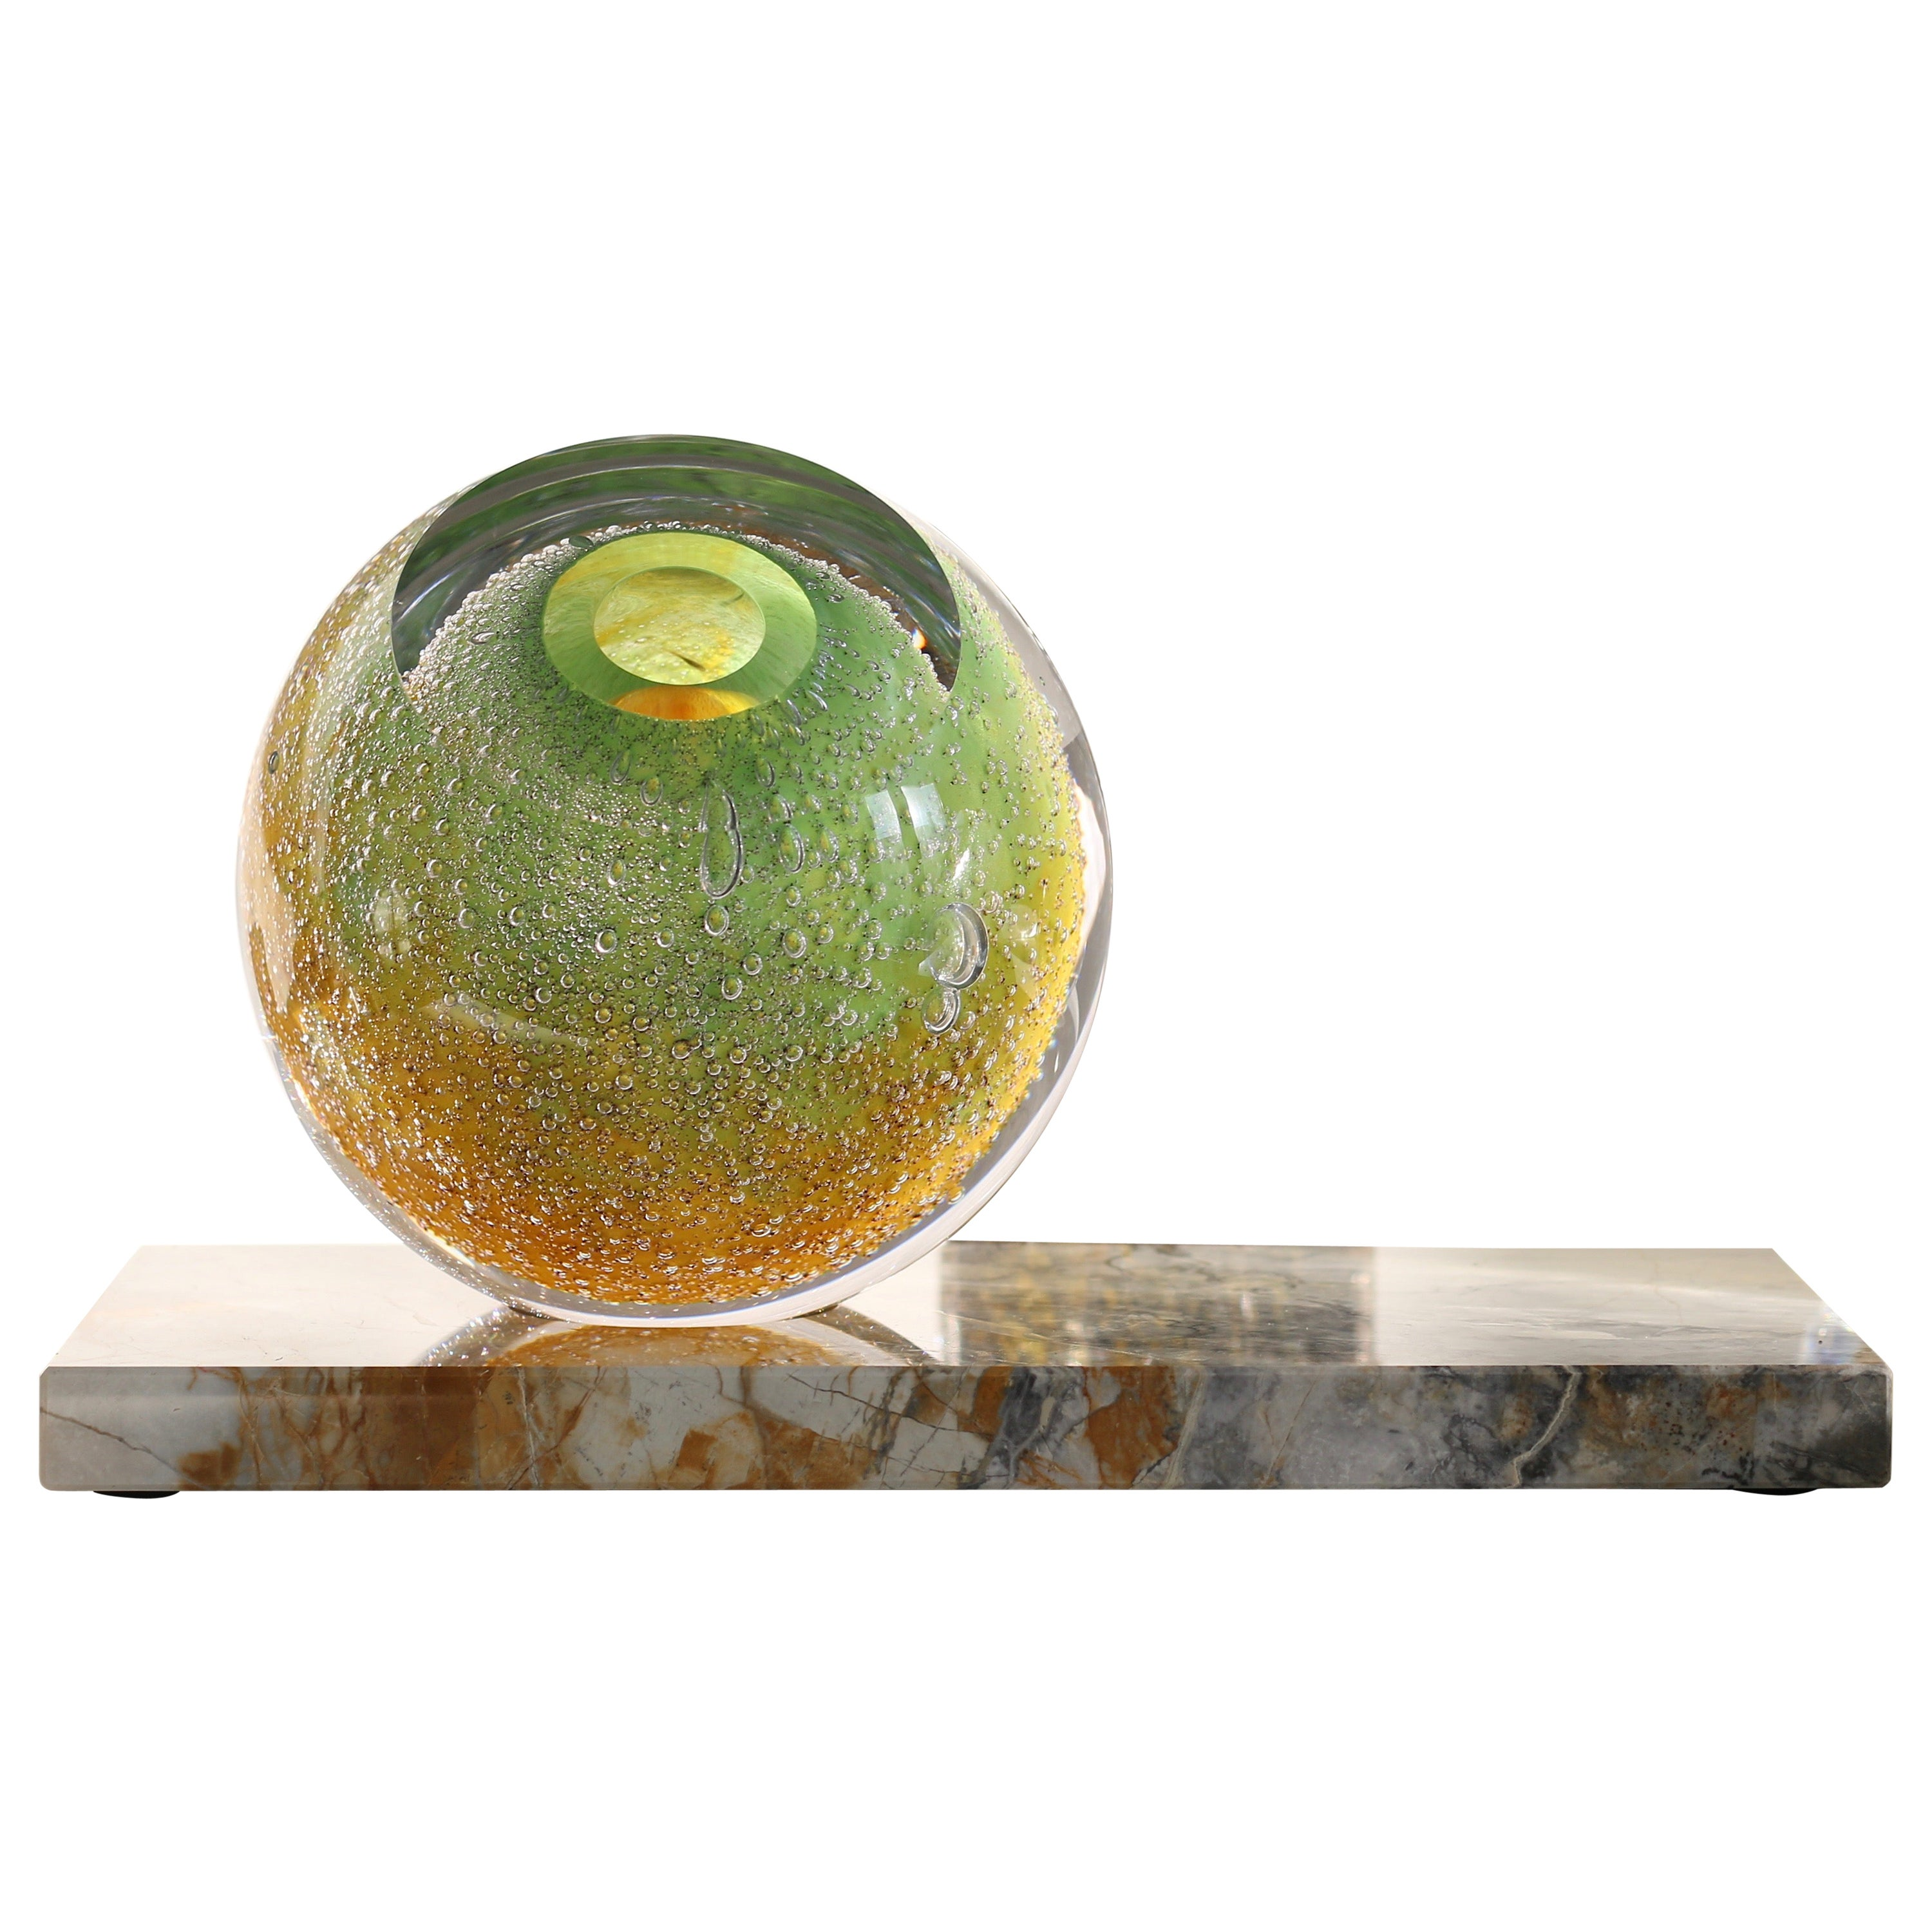 'Venus Eye' Mouth-Blown Glass Vase on Marble by Experimental, 2019